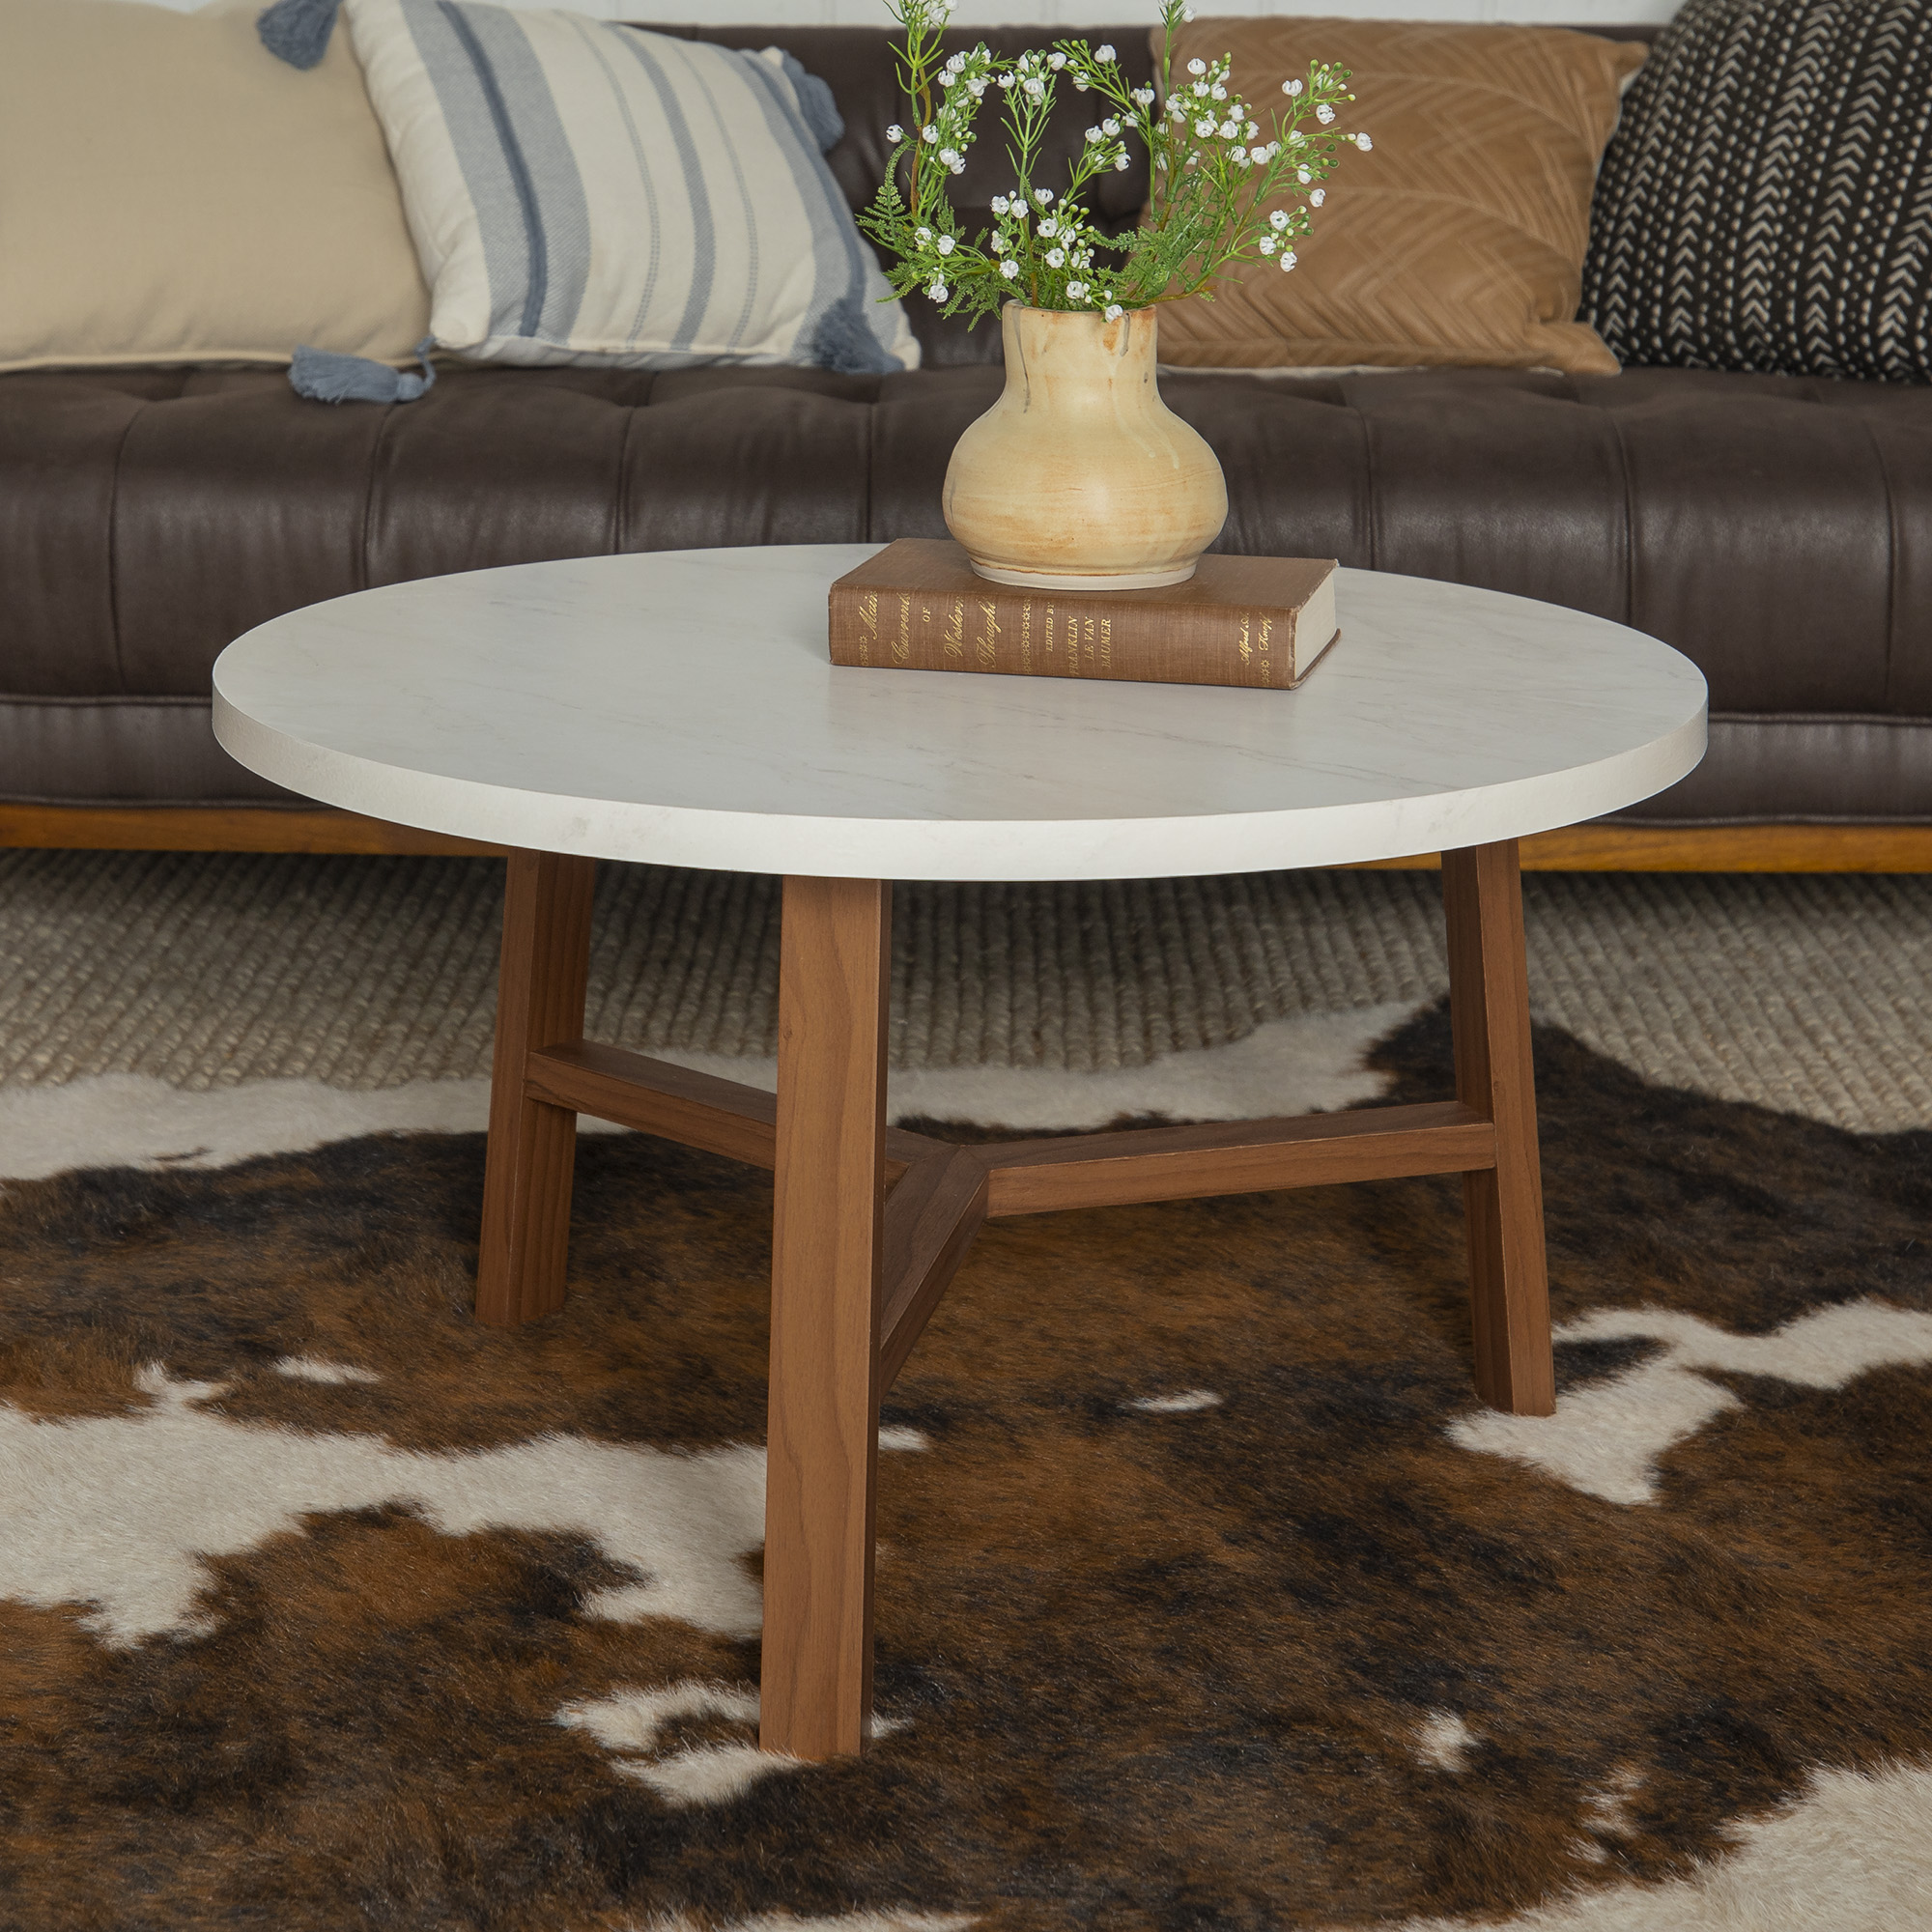 Manor Park Mid-Century Modern Round Coffee Table - White Marble and Acorn - Walmart.com ...